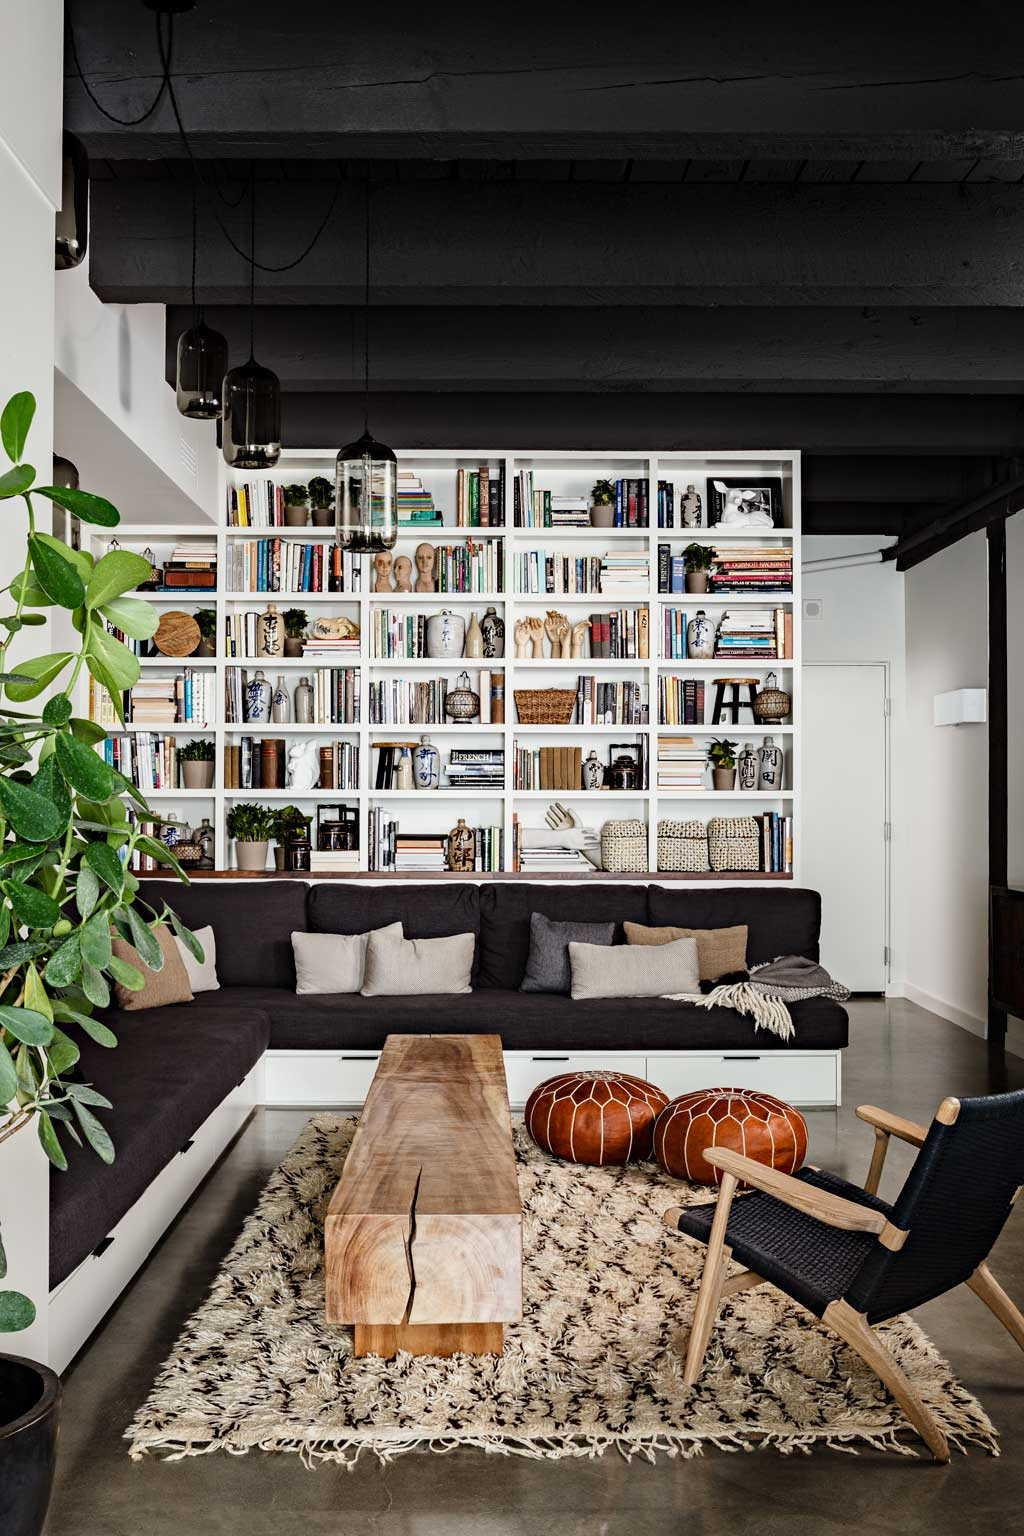 curated shelves